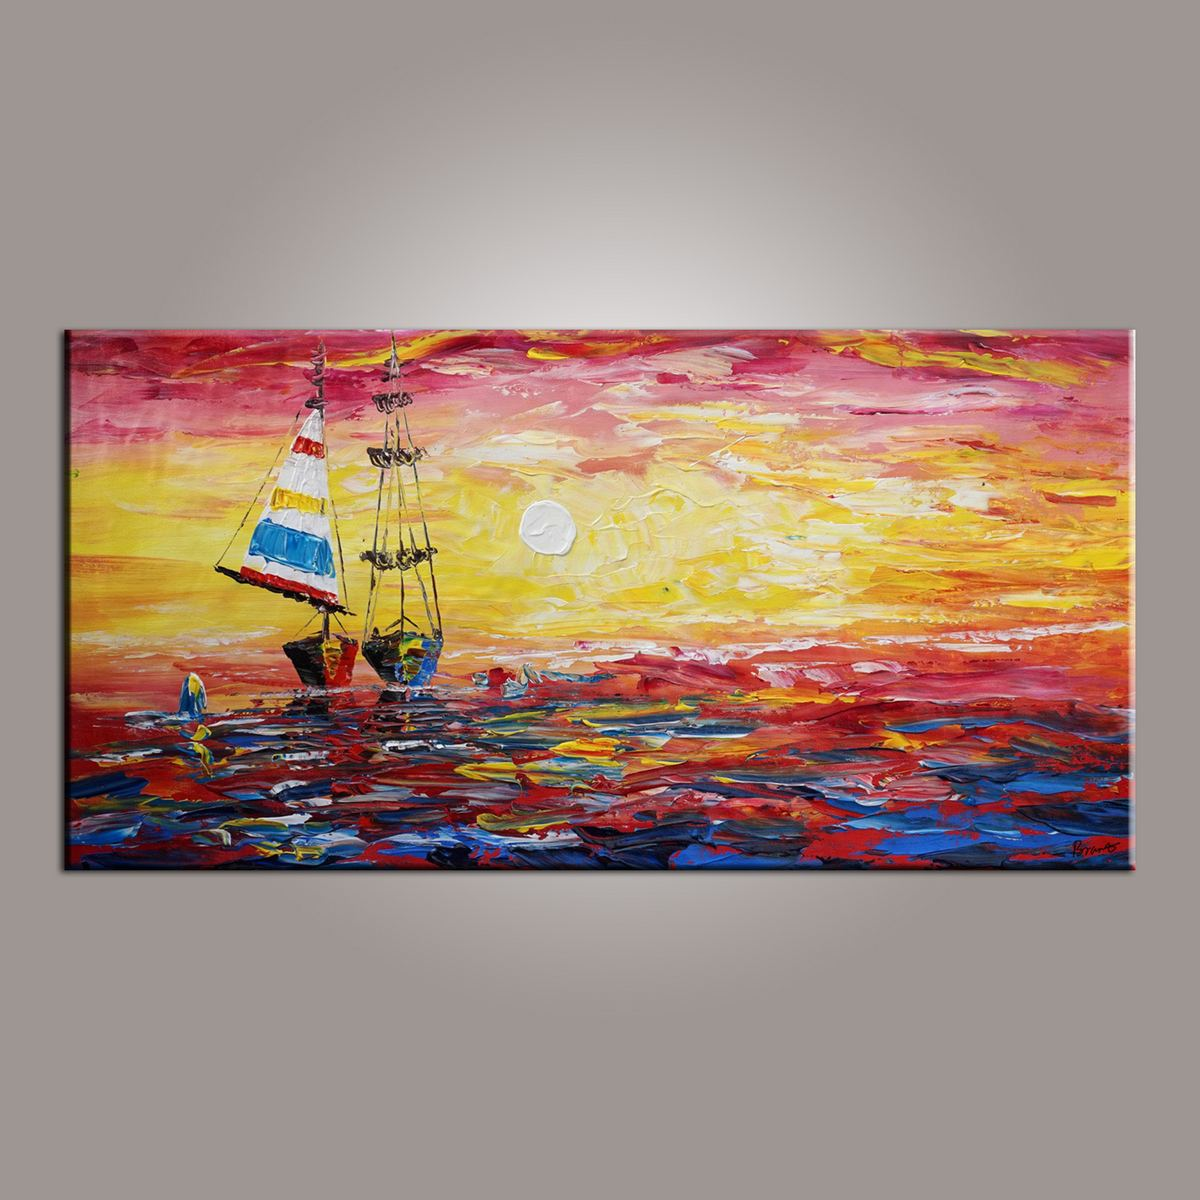 Dining Room Wall Art, Canvas Art, Art for Sale, Contemporary Art, Boat Painting, Modern Art, Art Painting, Abstract Art-Paintingforhome